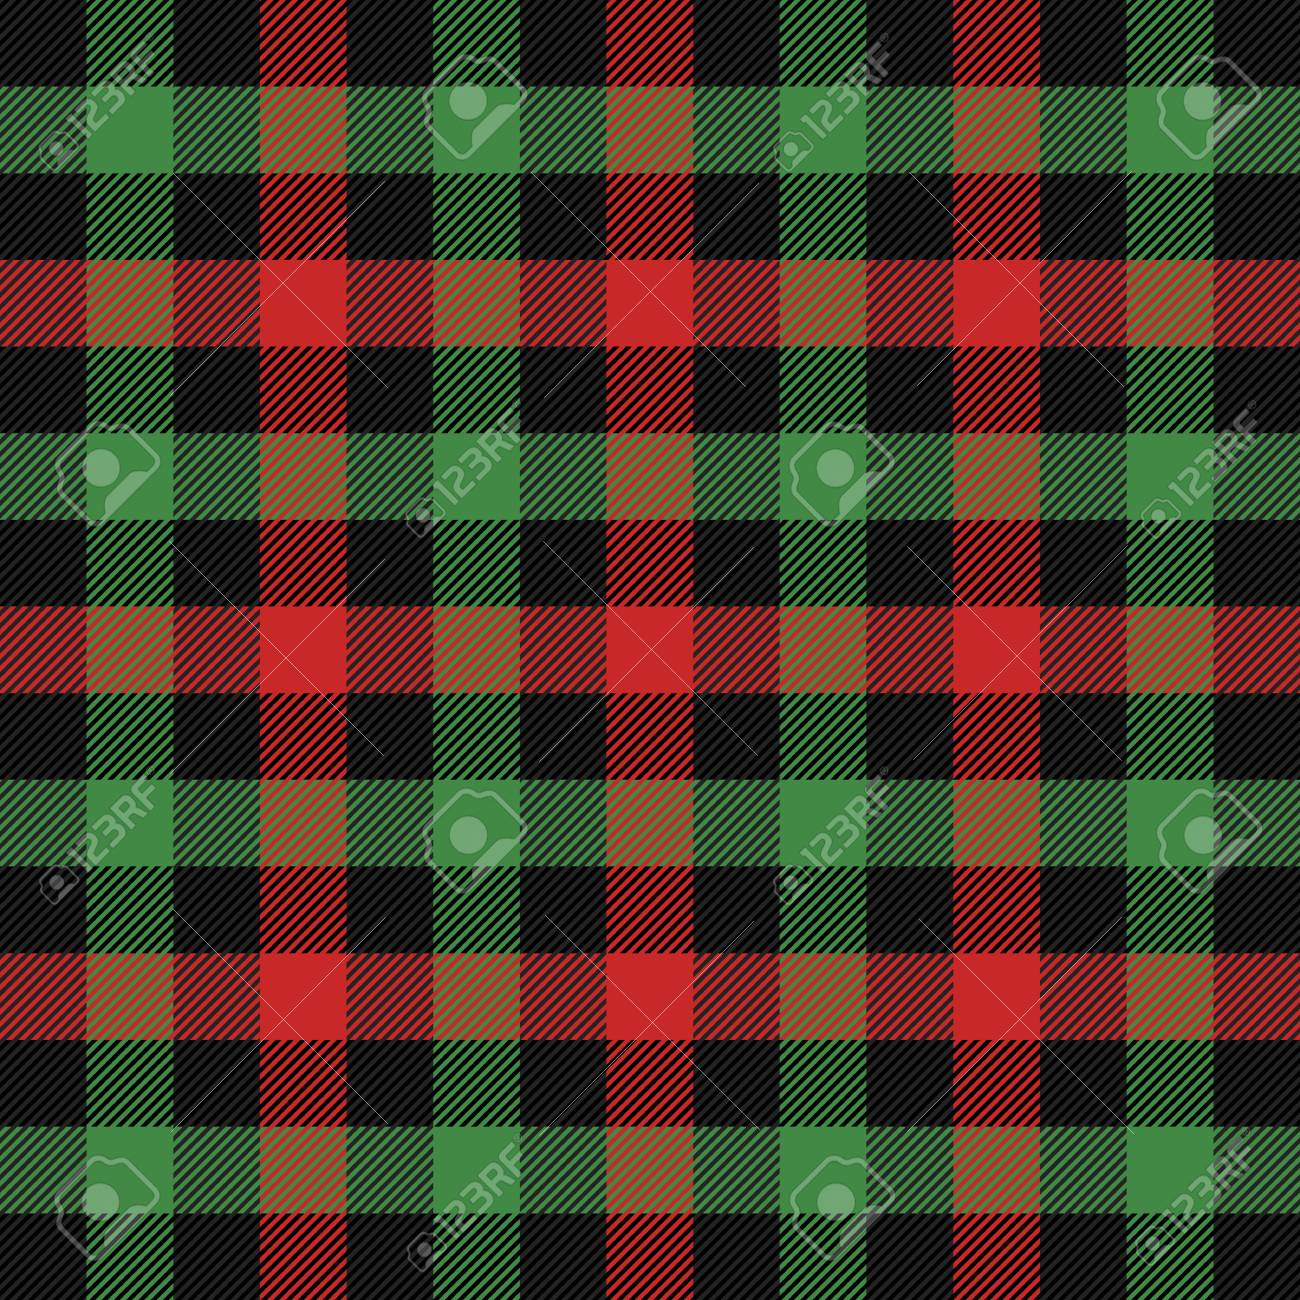 Christmas and new year tartan plaid  Scottish pattern in black,